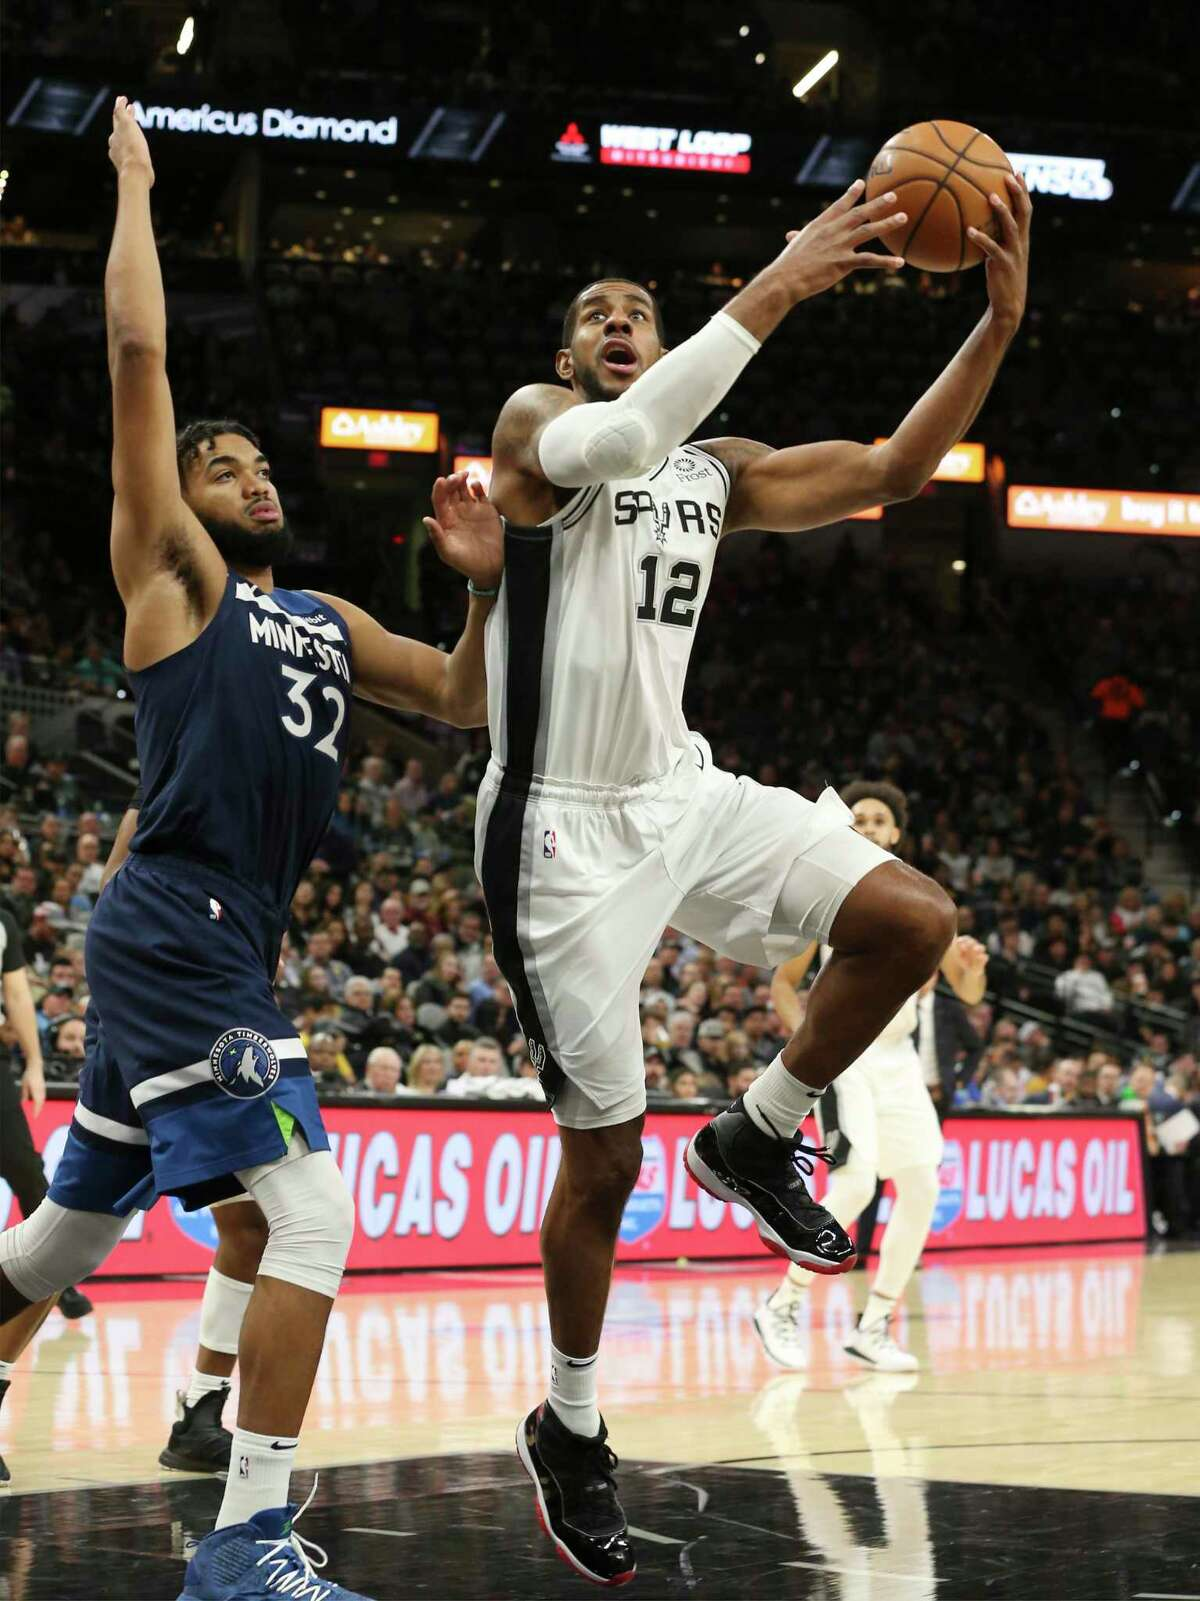 Spurs' LaMarcus Aldridge (12) drives toward the basket against Minnesota Timberwolves' Karl-Anthony Towns (32) during their game at the AT&T Center on Wednesday, Nov. 27, 2019.